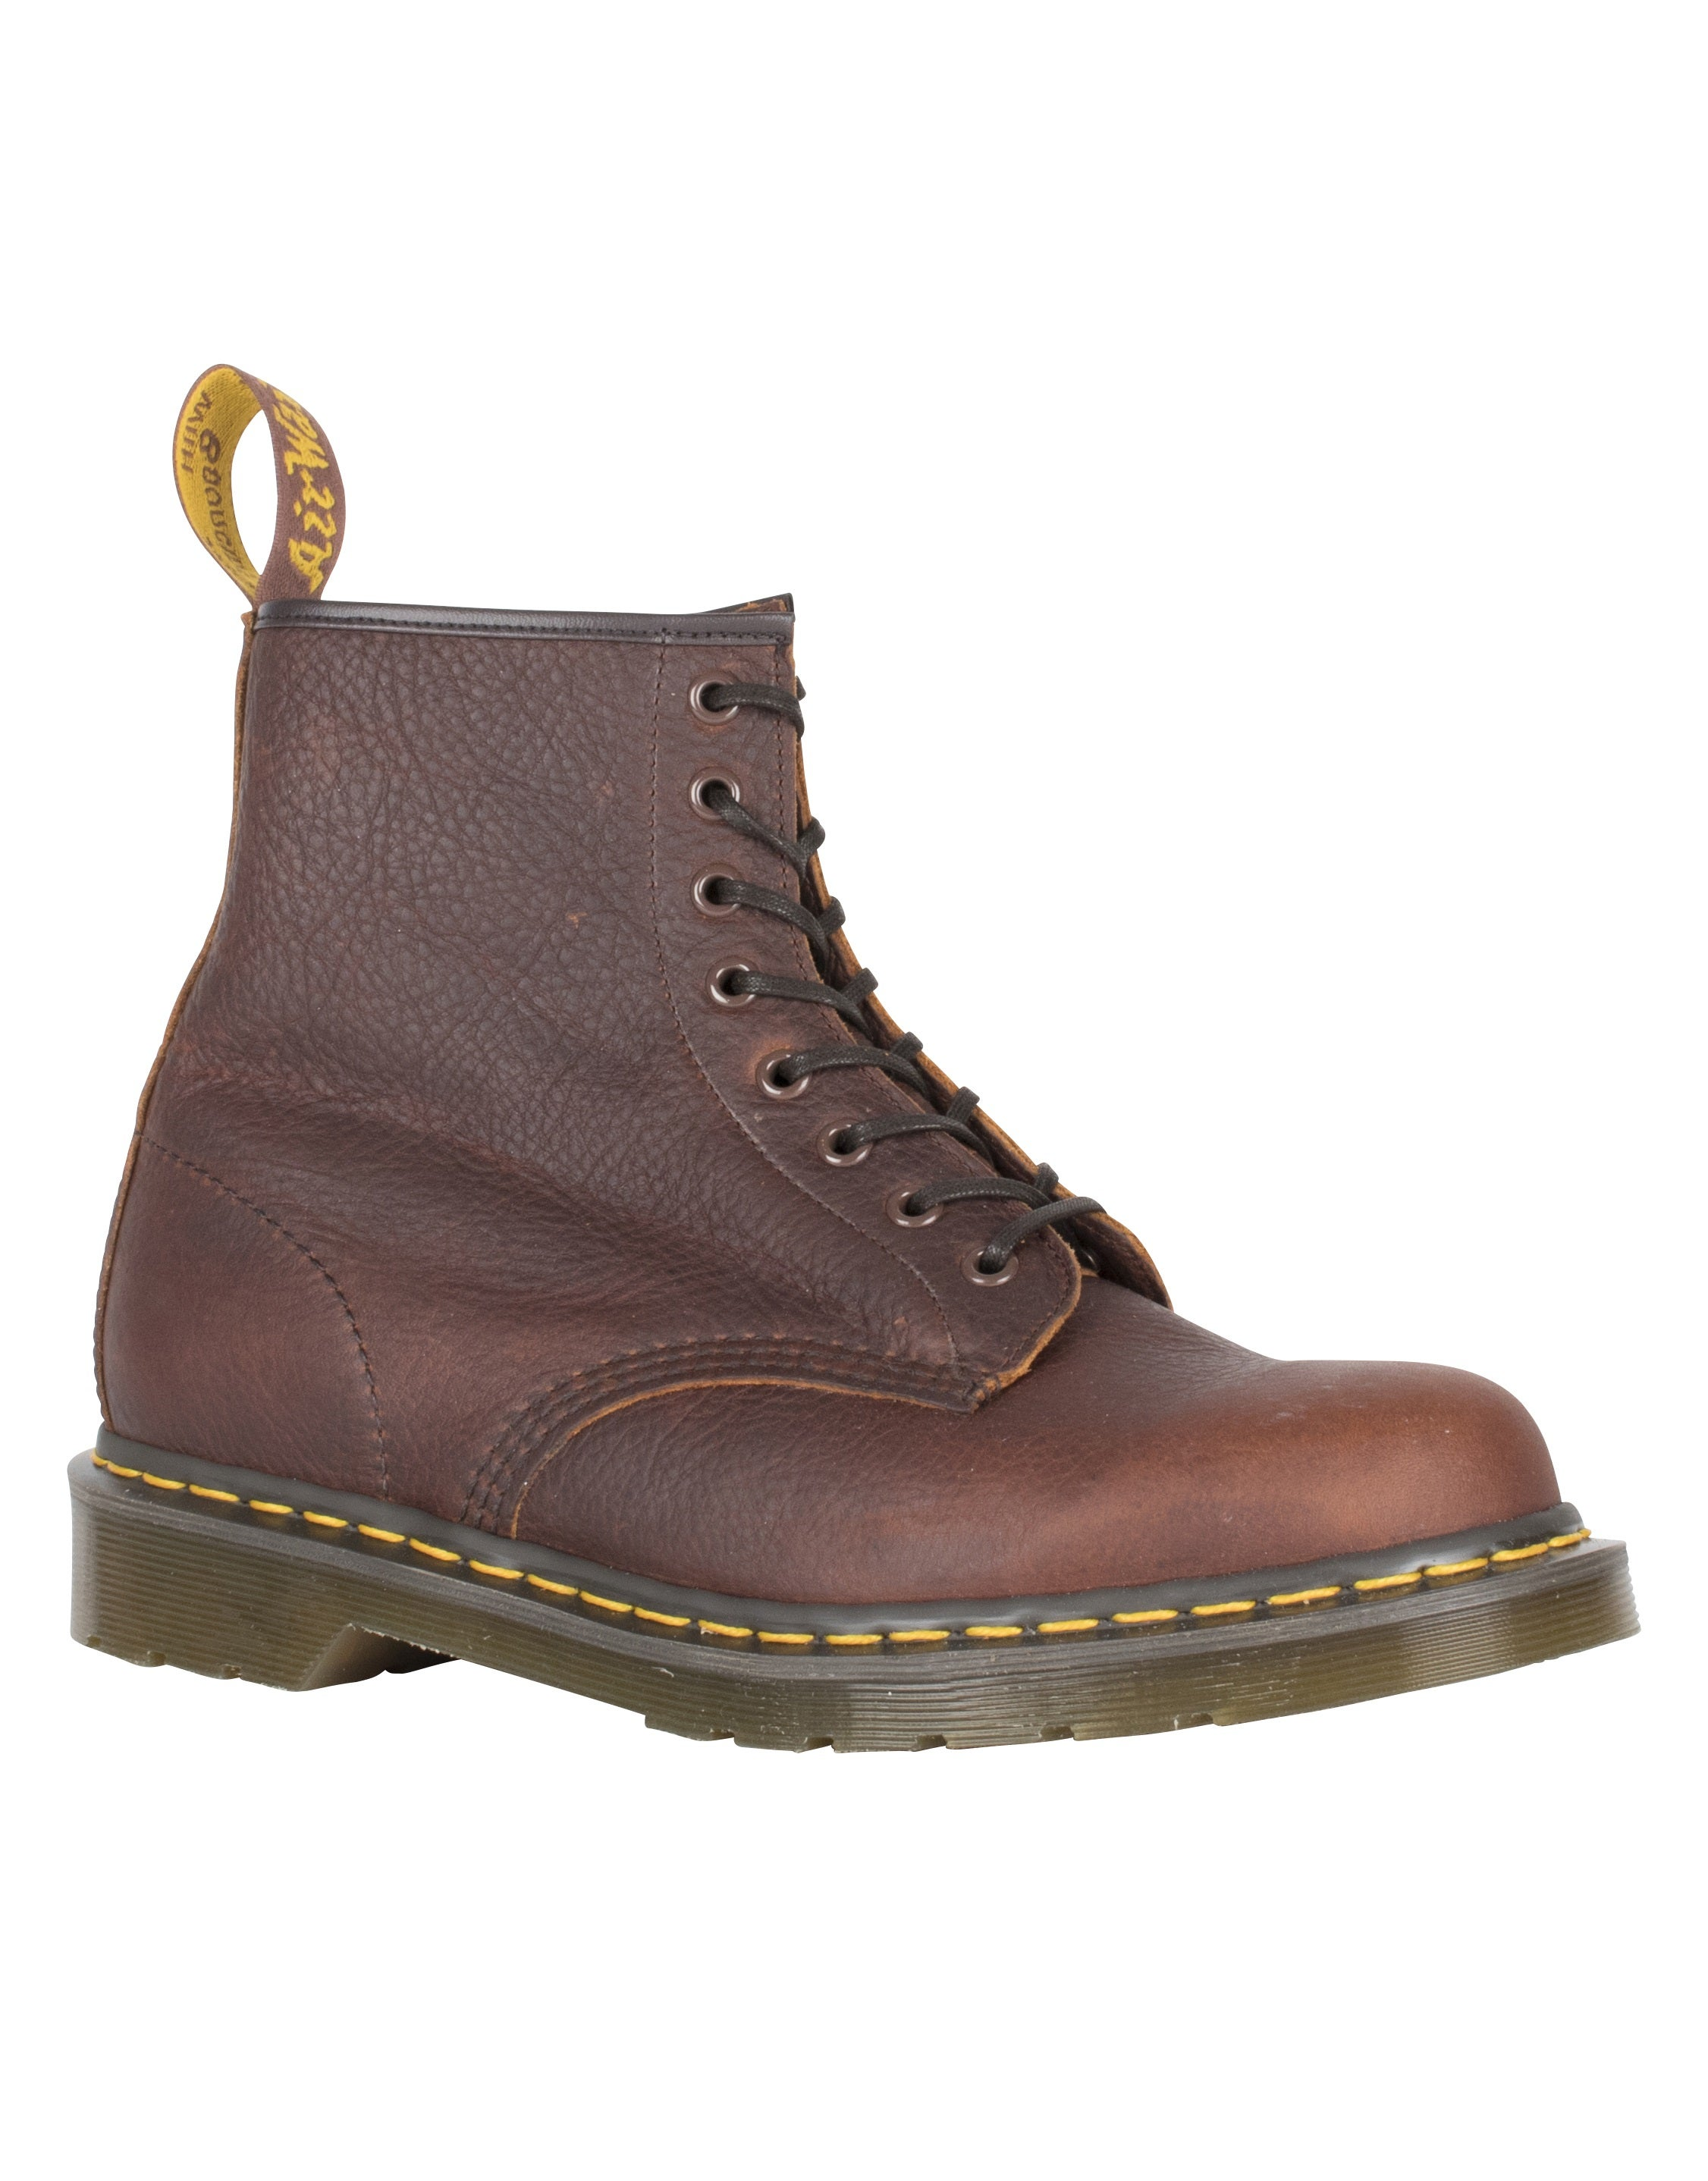 373a51bc21db3 Dr Martens 1460 Aztec Crazy Horse Boots - Dark Brown | Country Attire